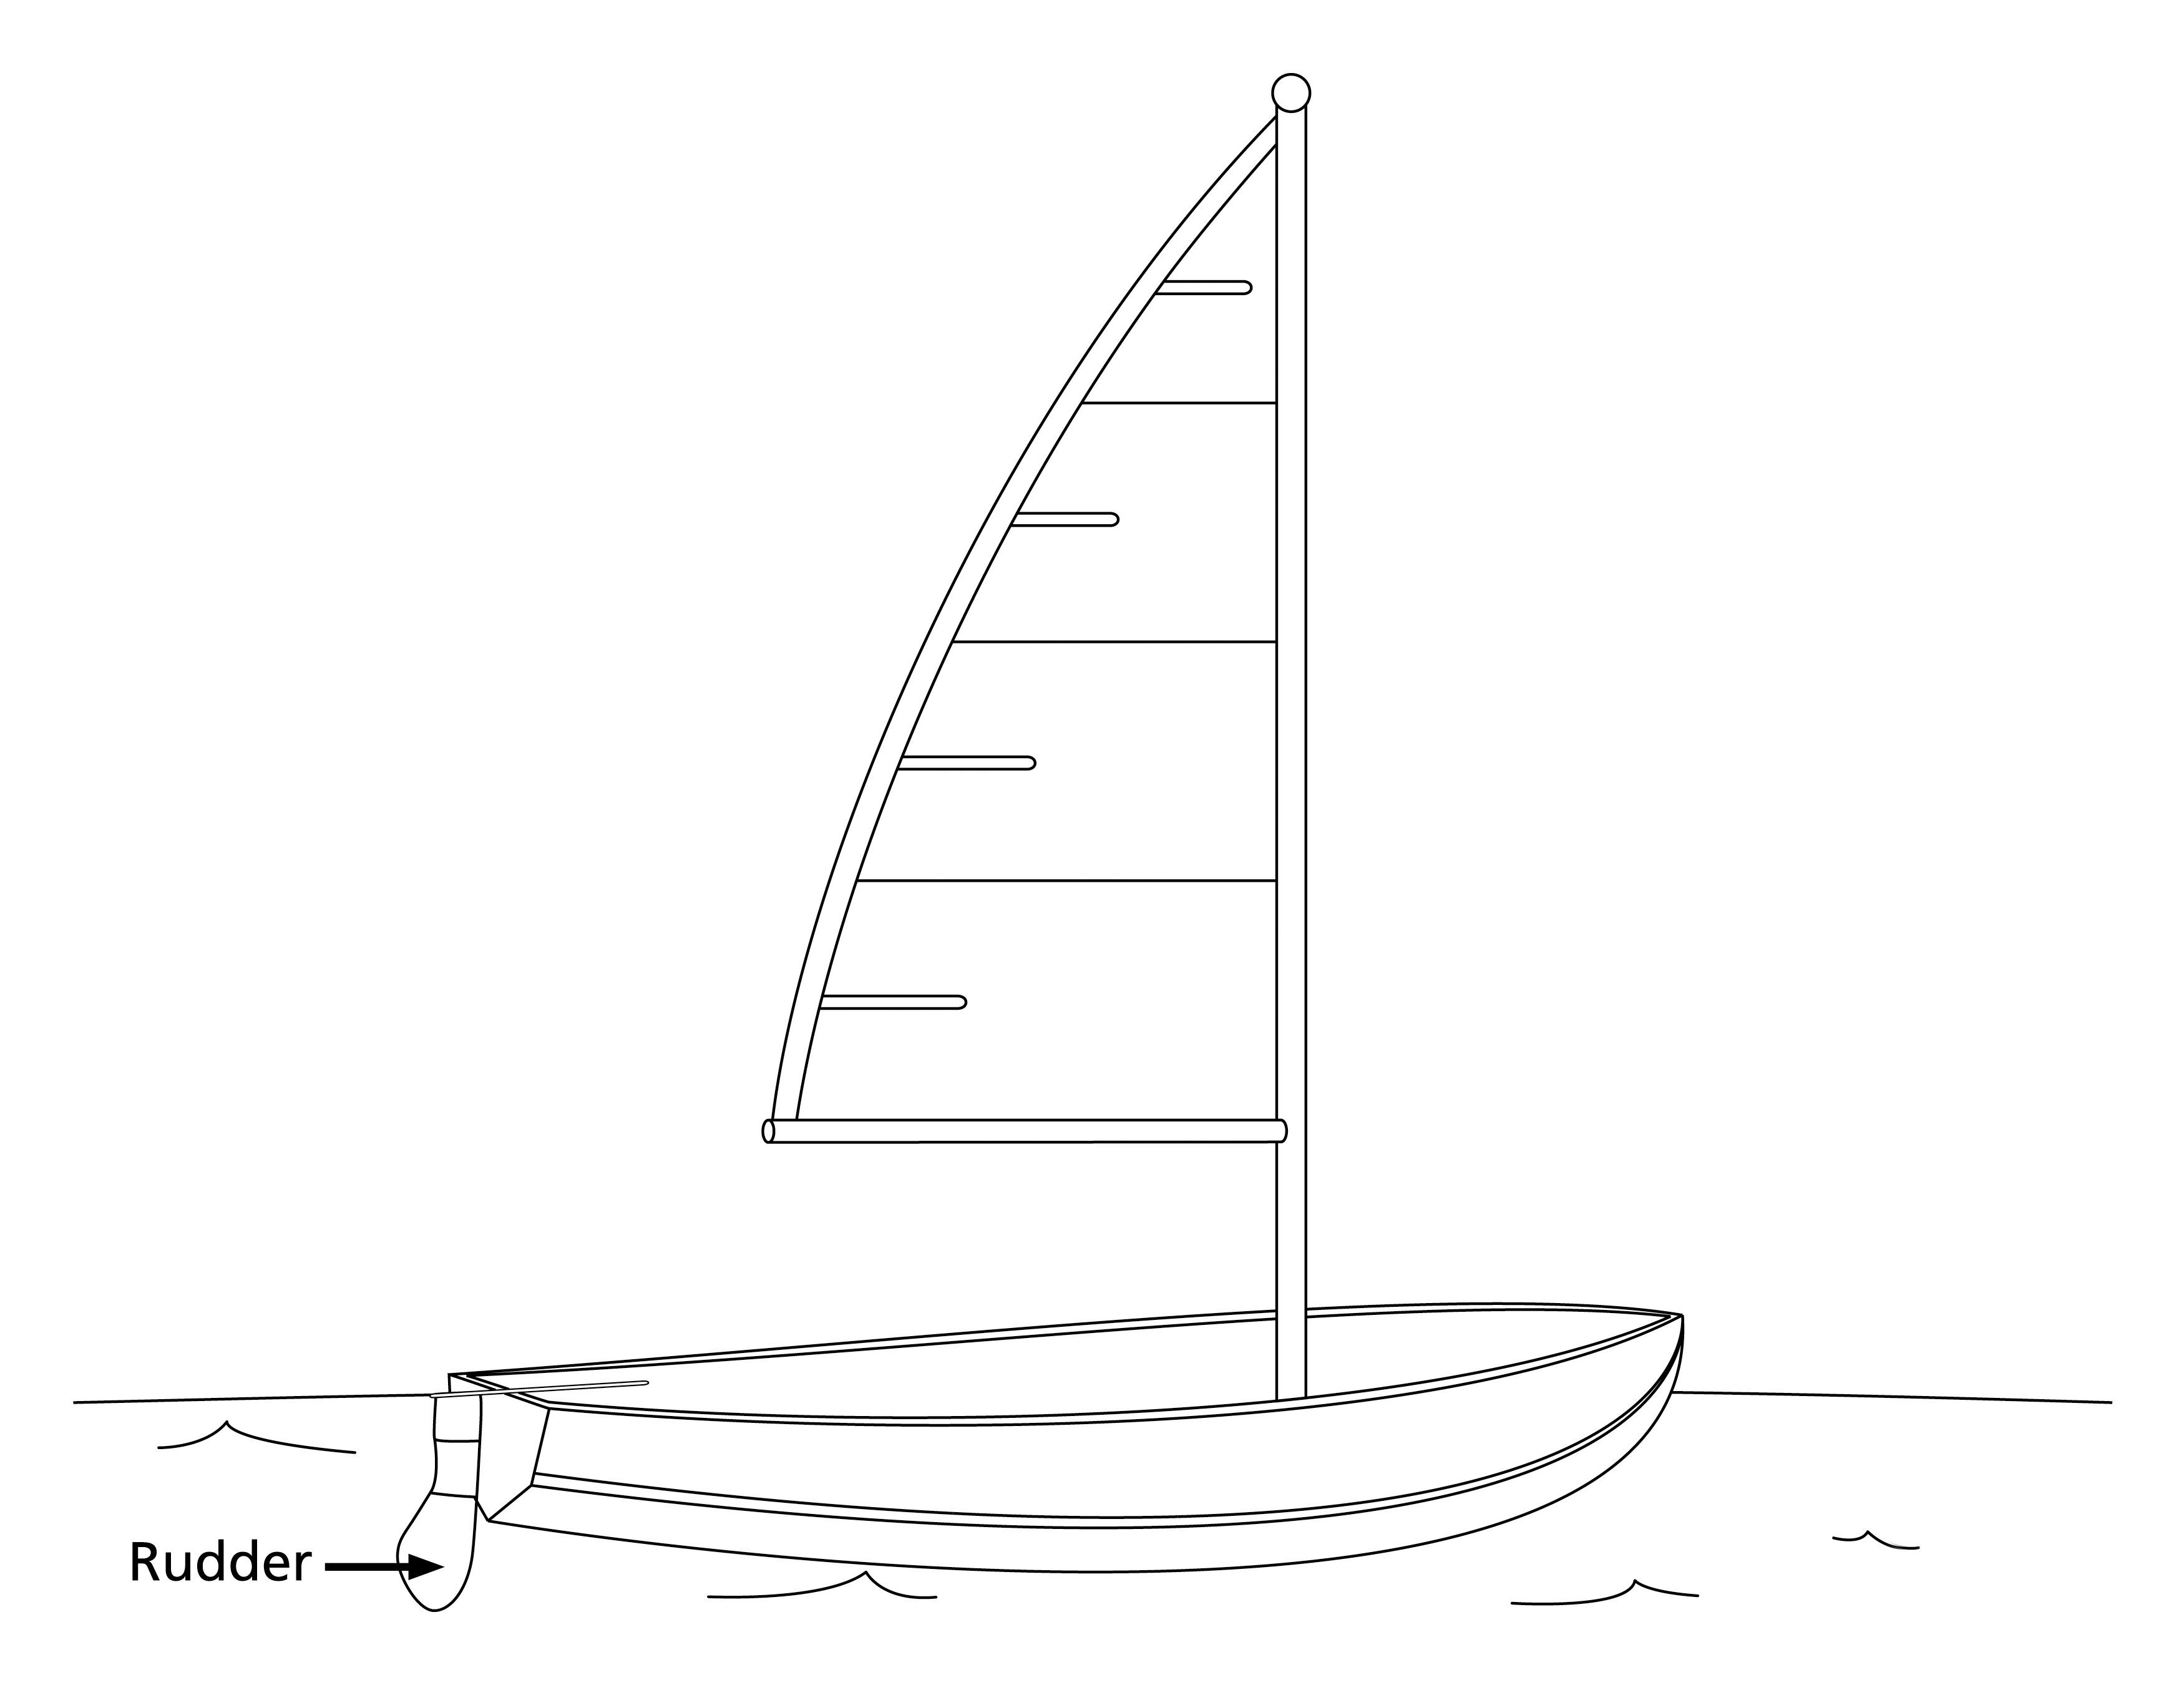 A drawing of a sailboat with the rudder showing.